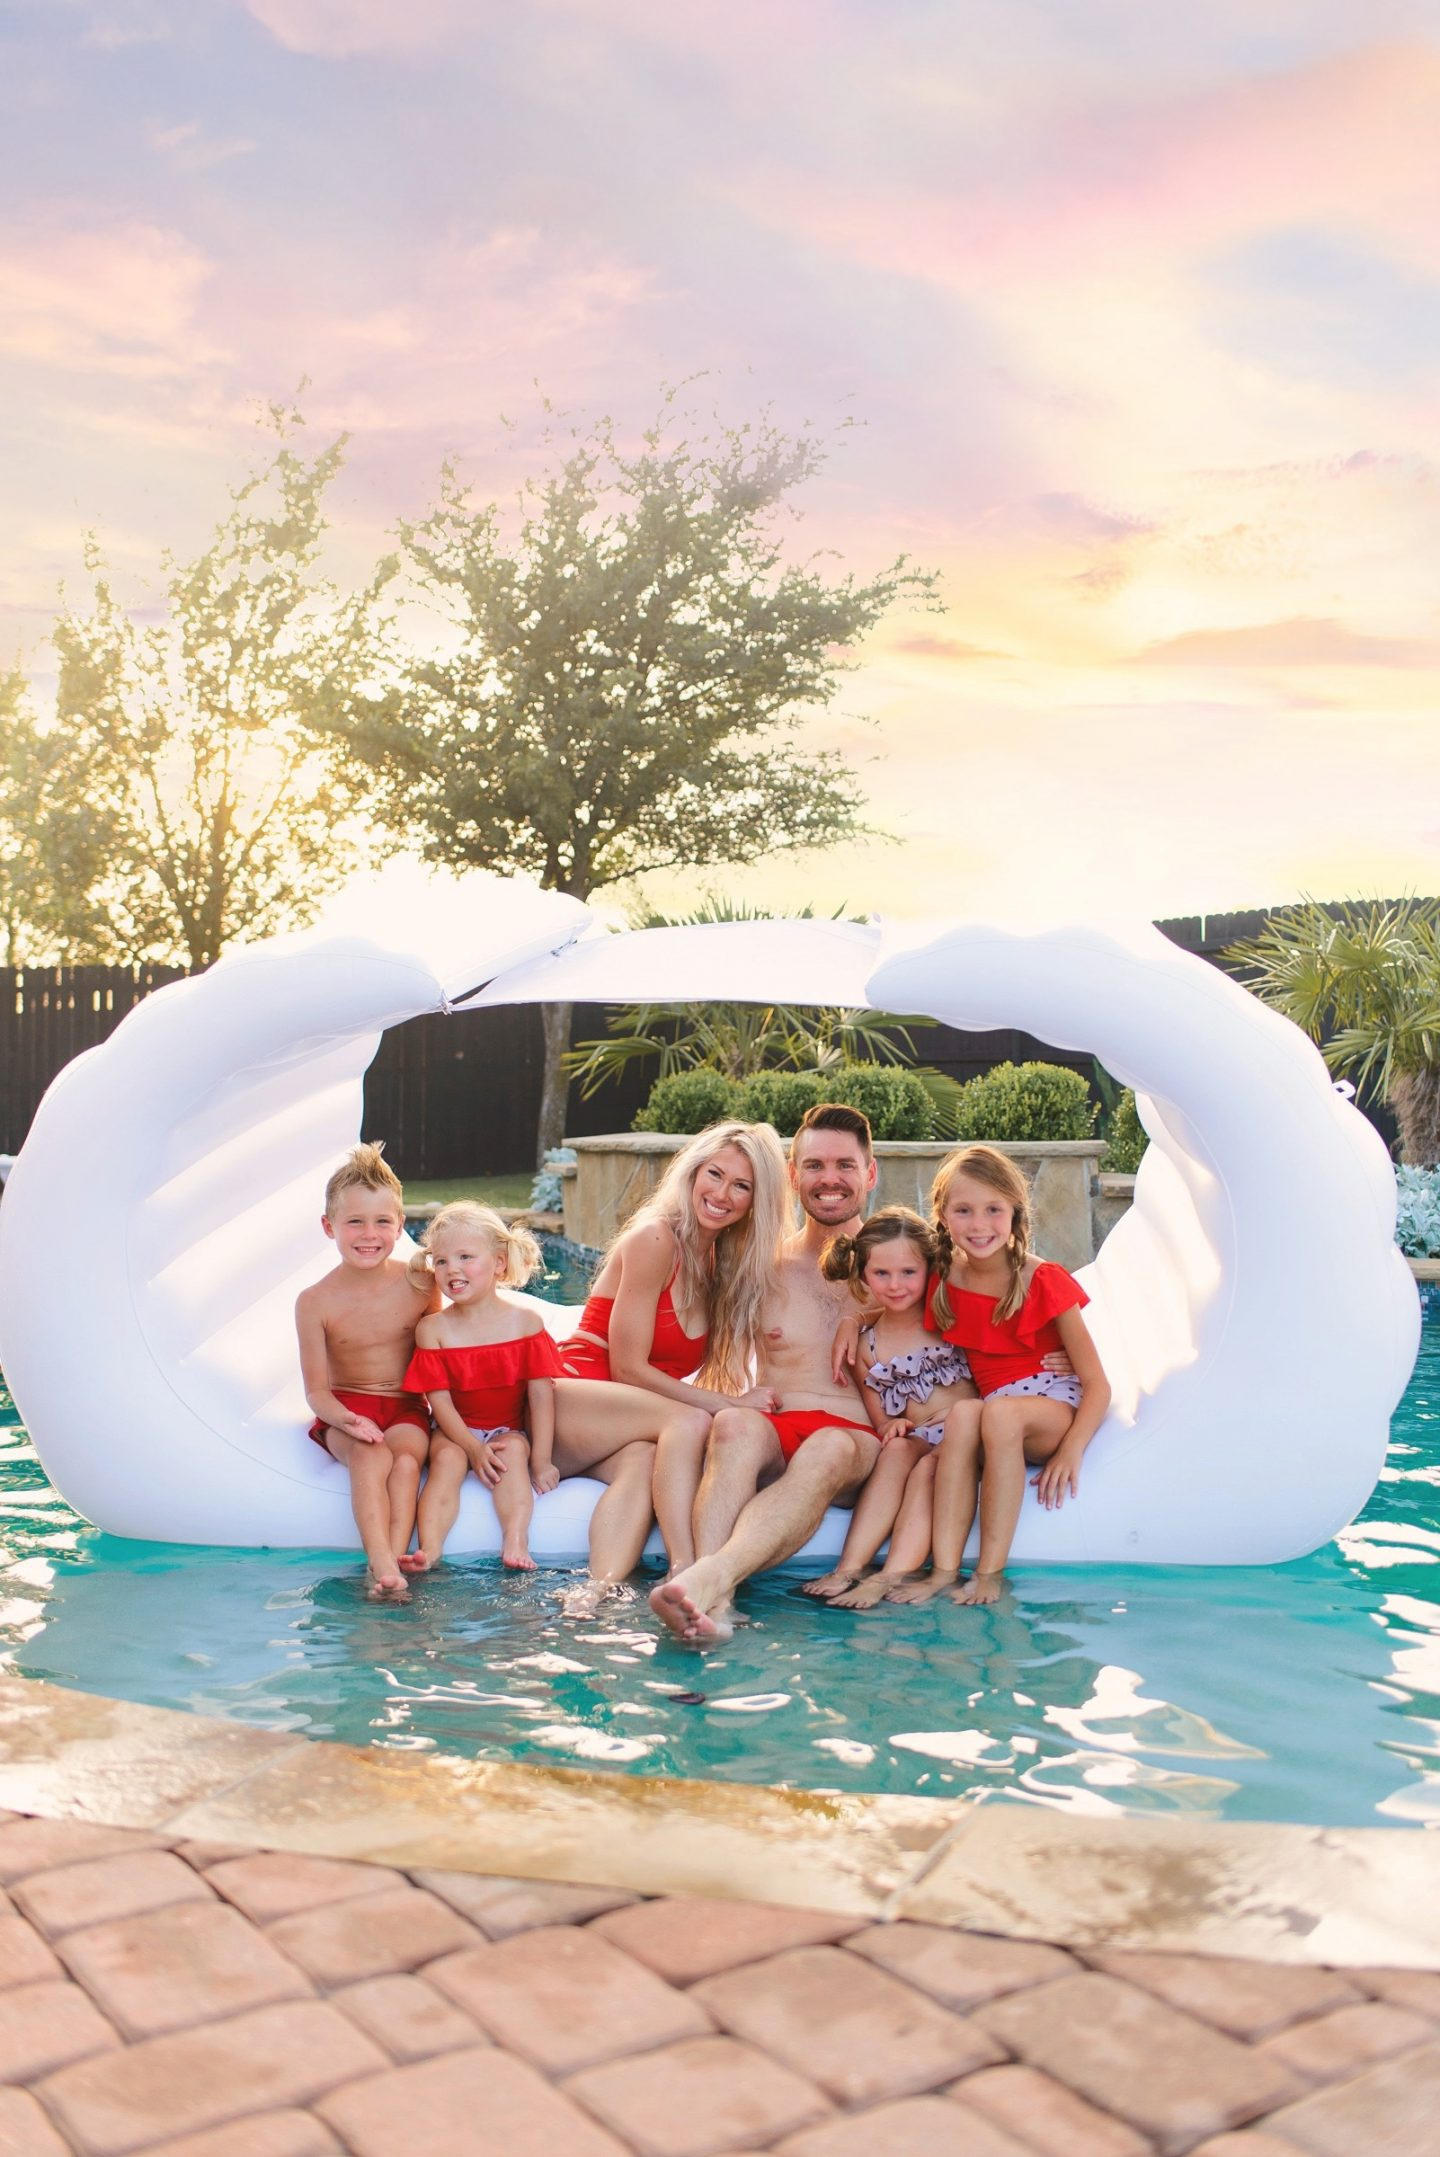 Summer Pool Floats!